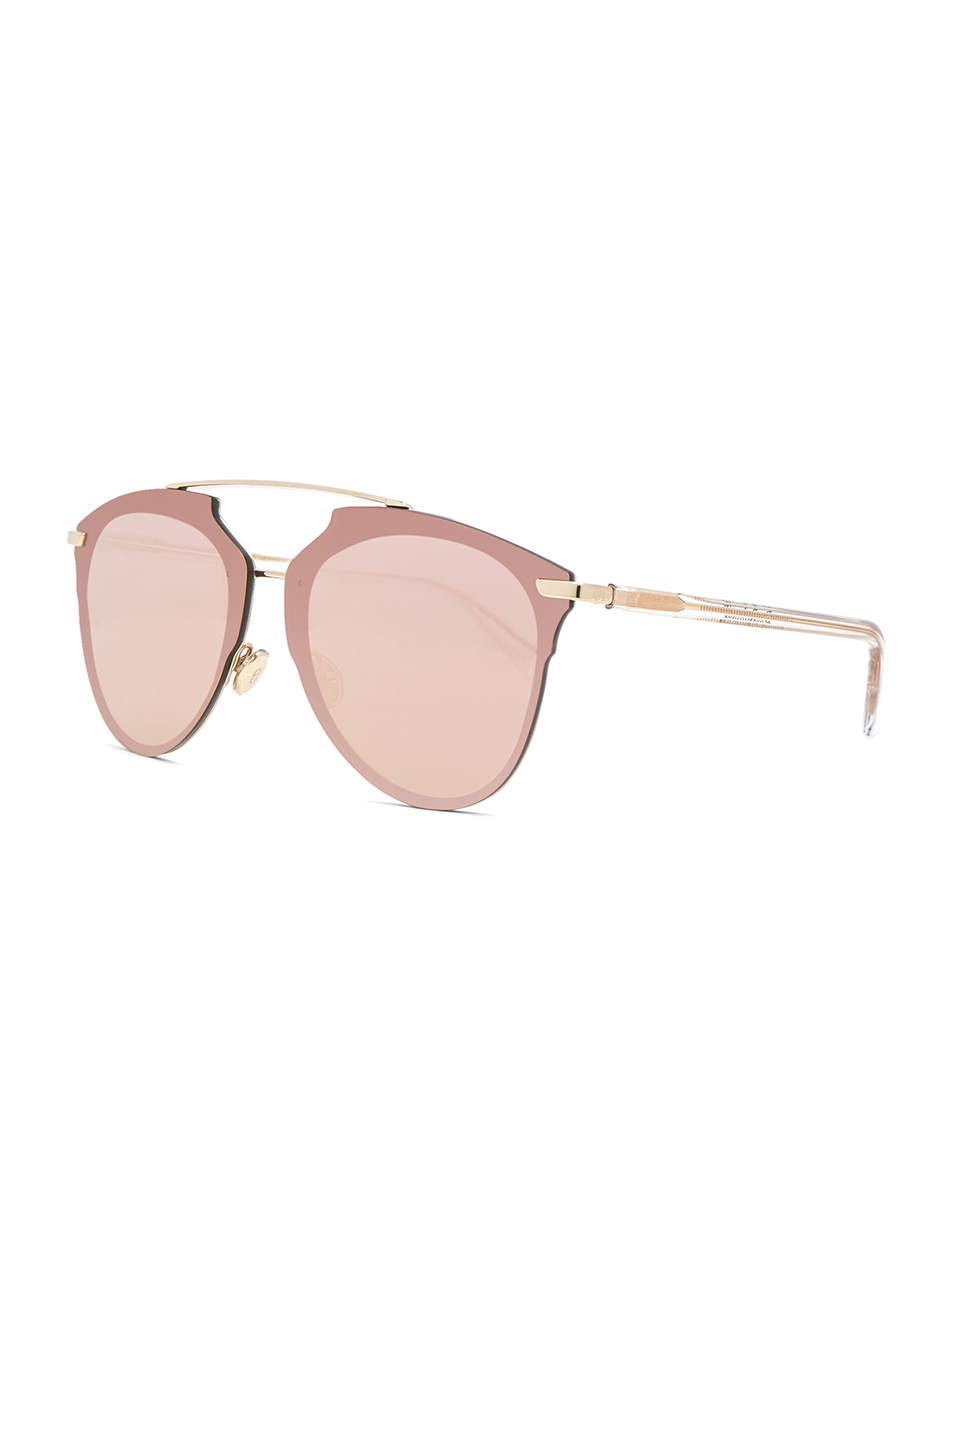 4d4a7109efad Buy Original Dior Reflected Sunglasses at Indonesia